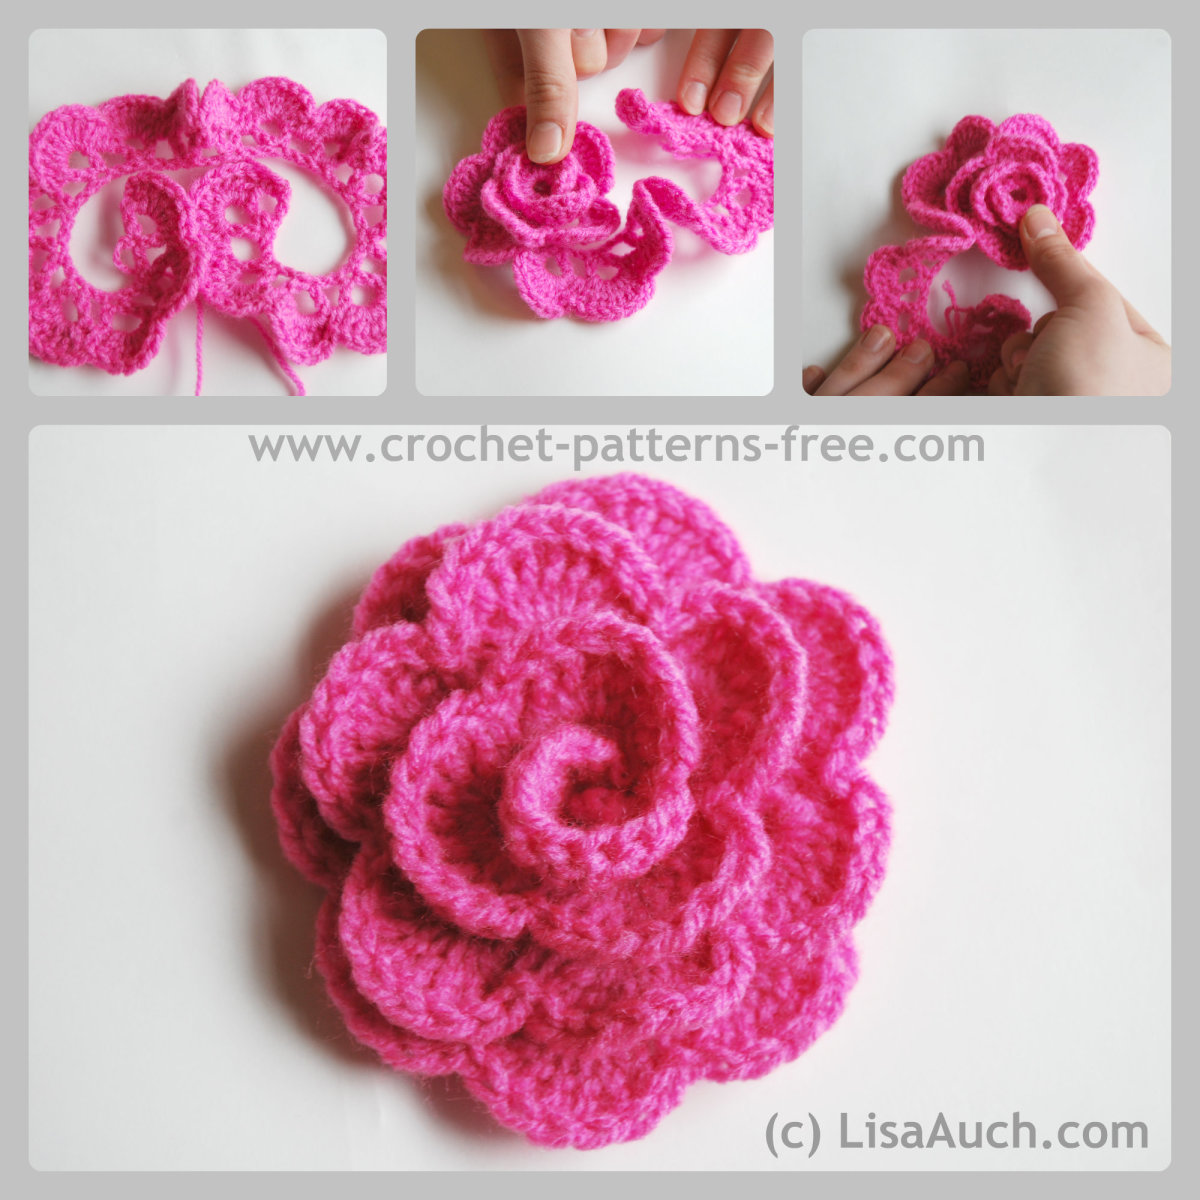 Free Crochet Flower Patterns- Crochet Rose